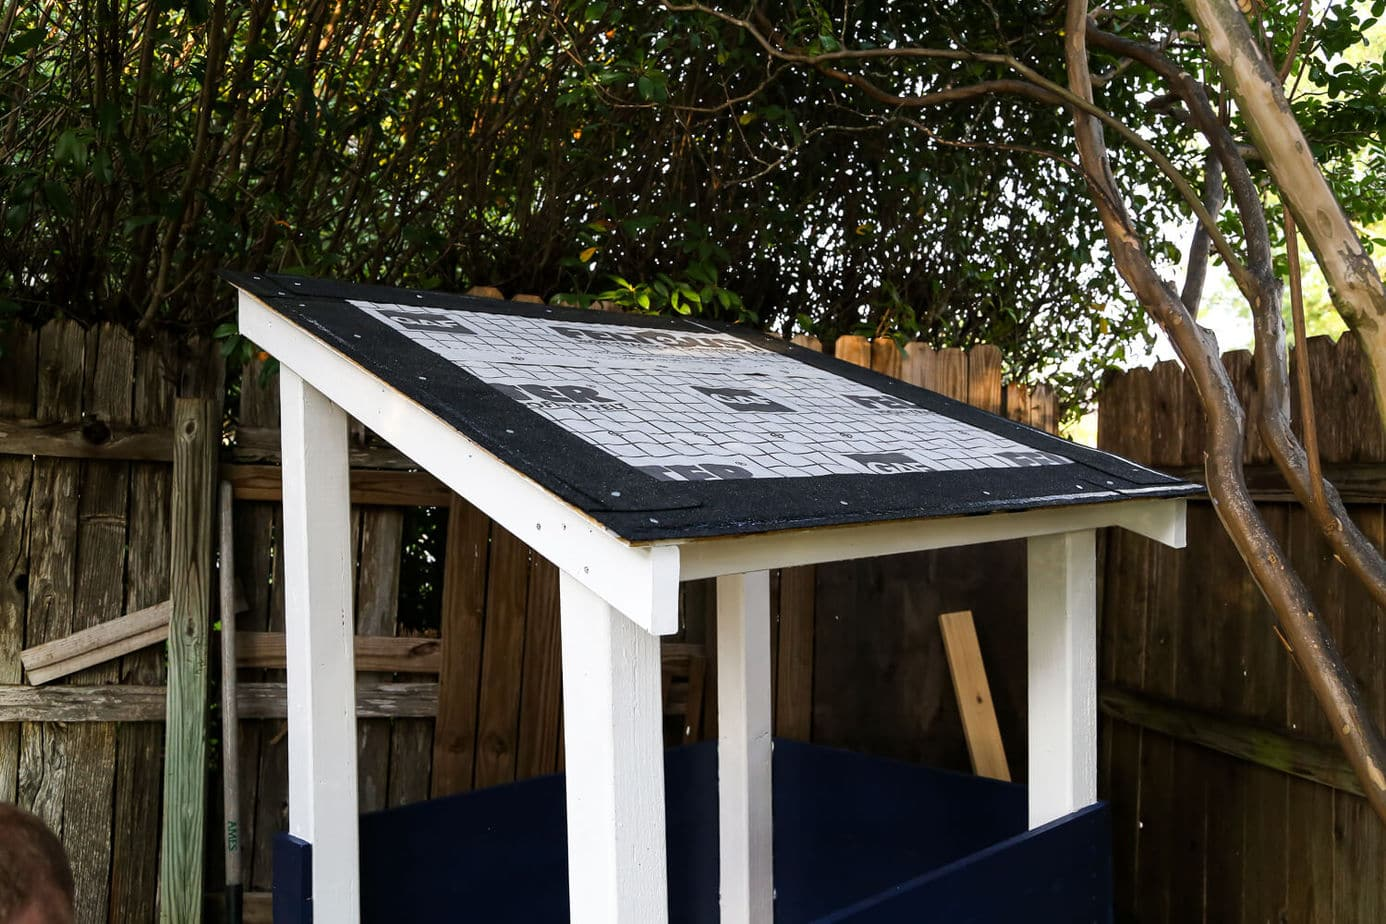 How To Shingle A Roof For A Backyard Playhouse Love